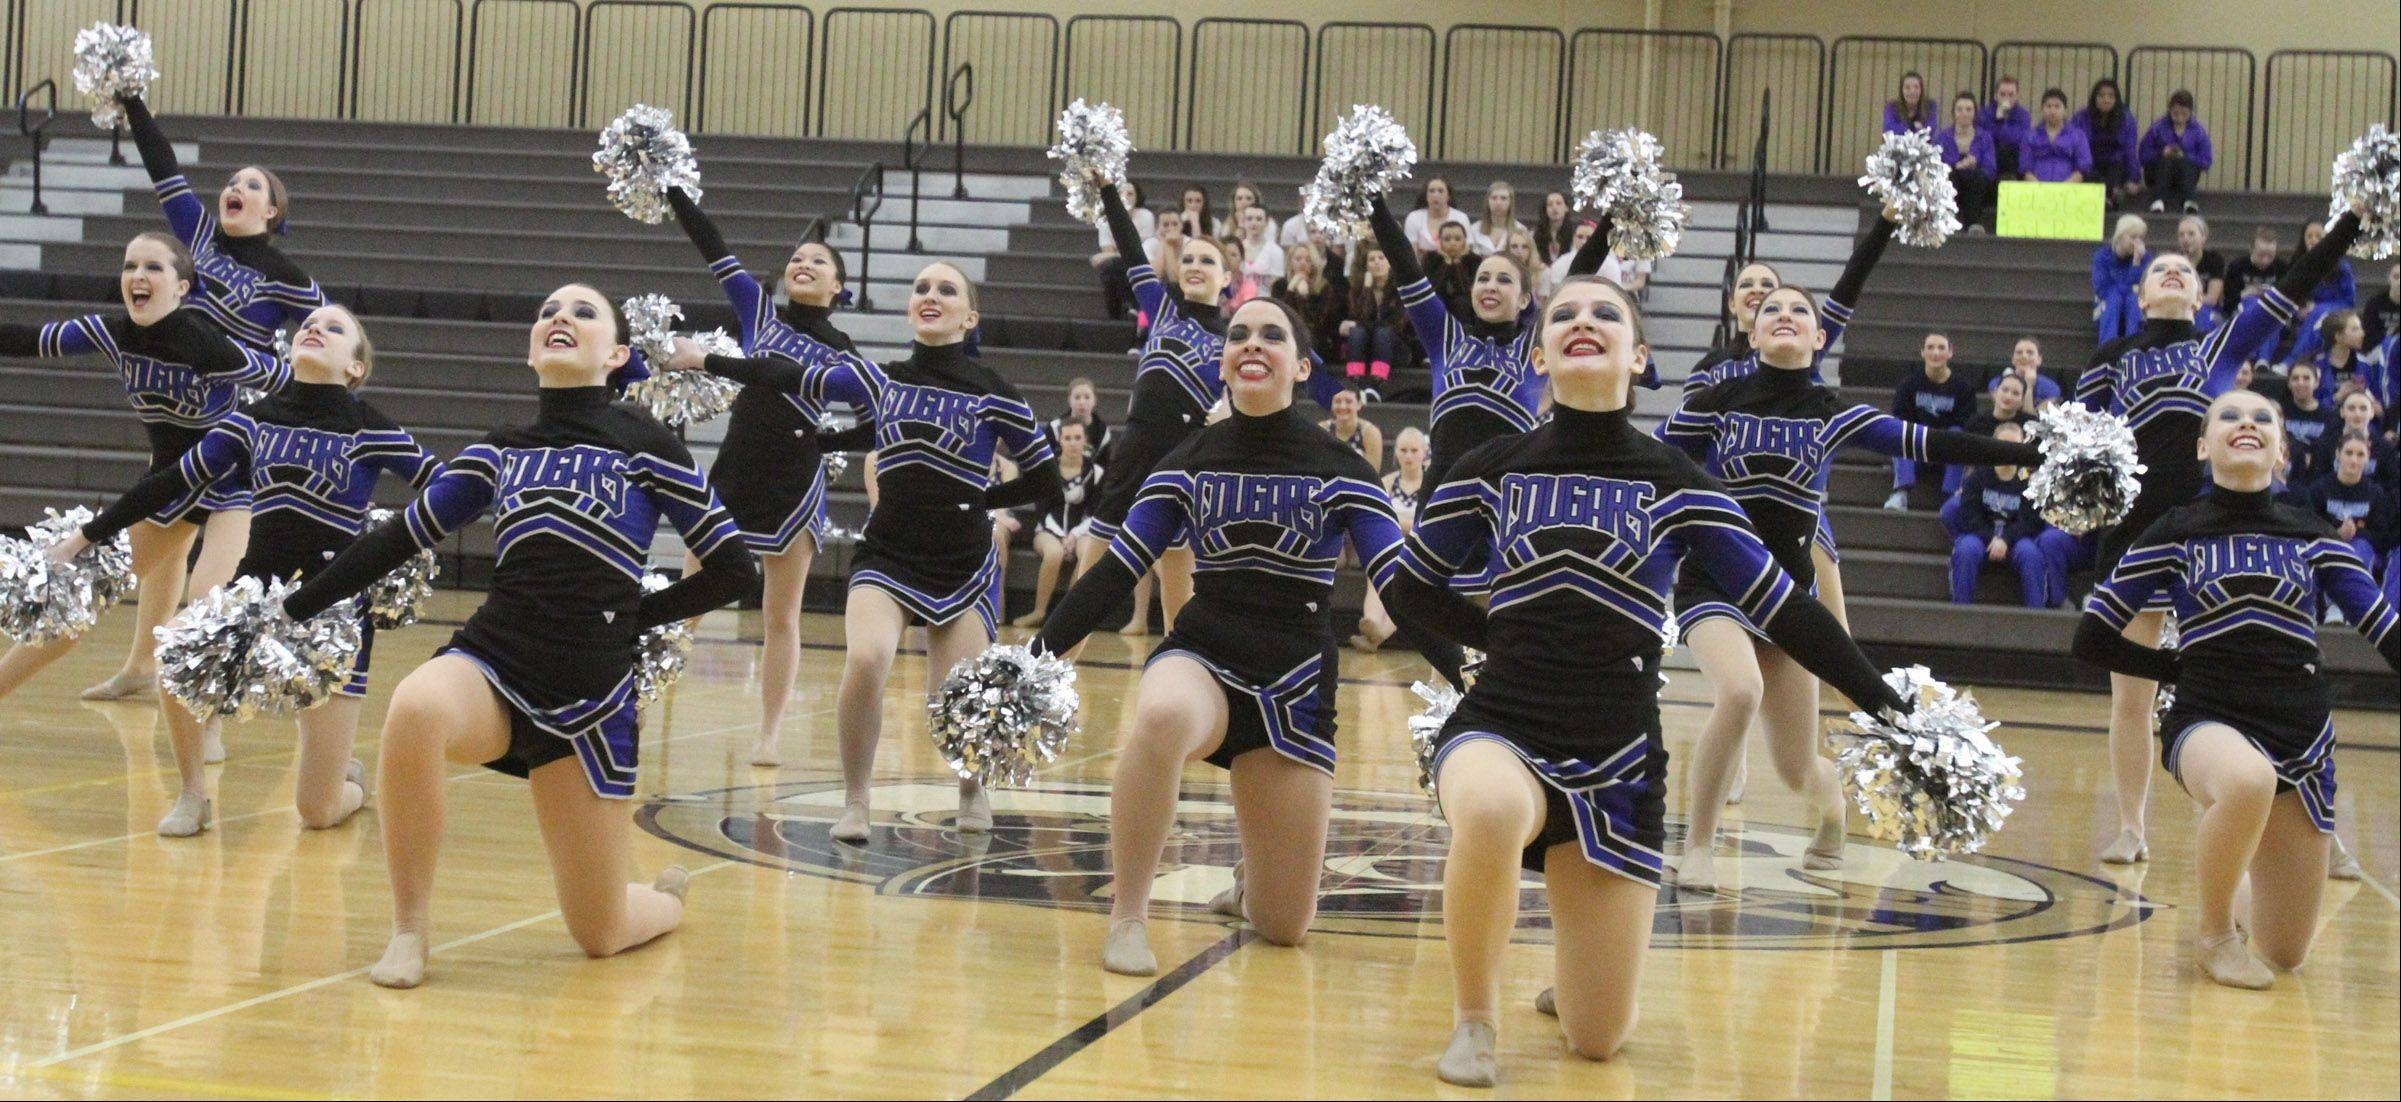 Vernon Hills High School dance team competes at the IHSA competitive dance sectional in Grayslake on Saturday.